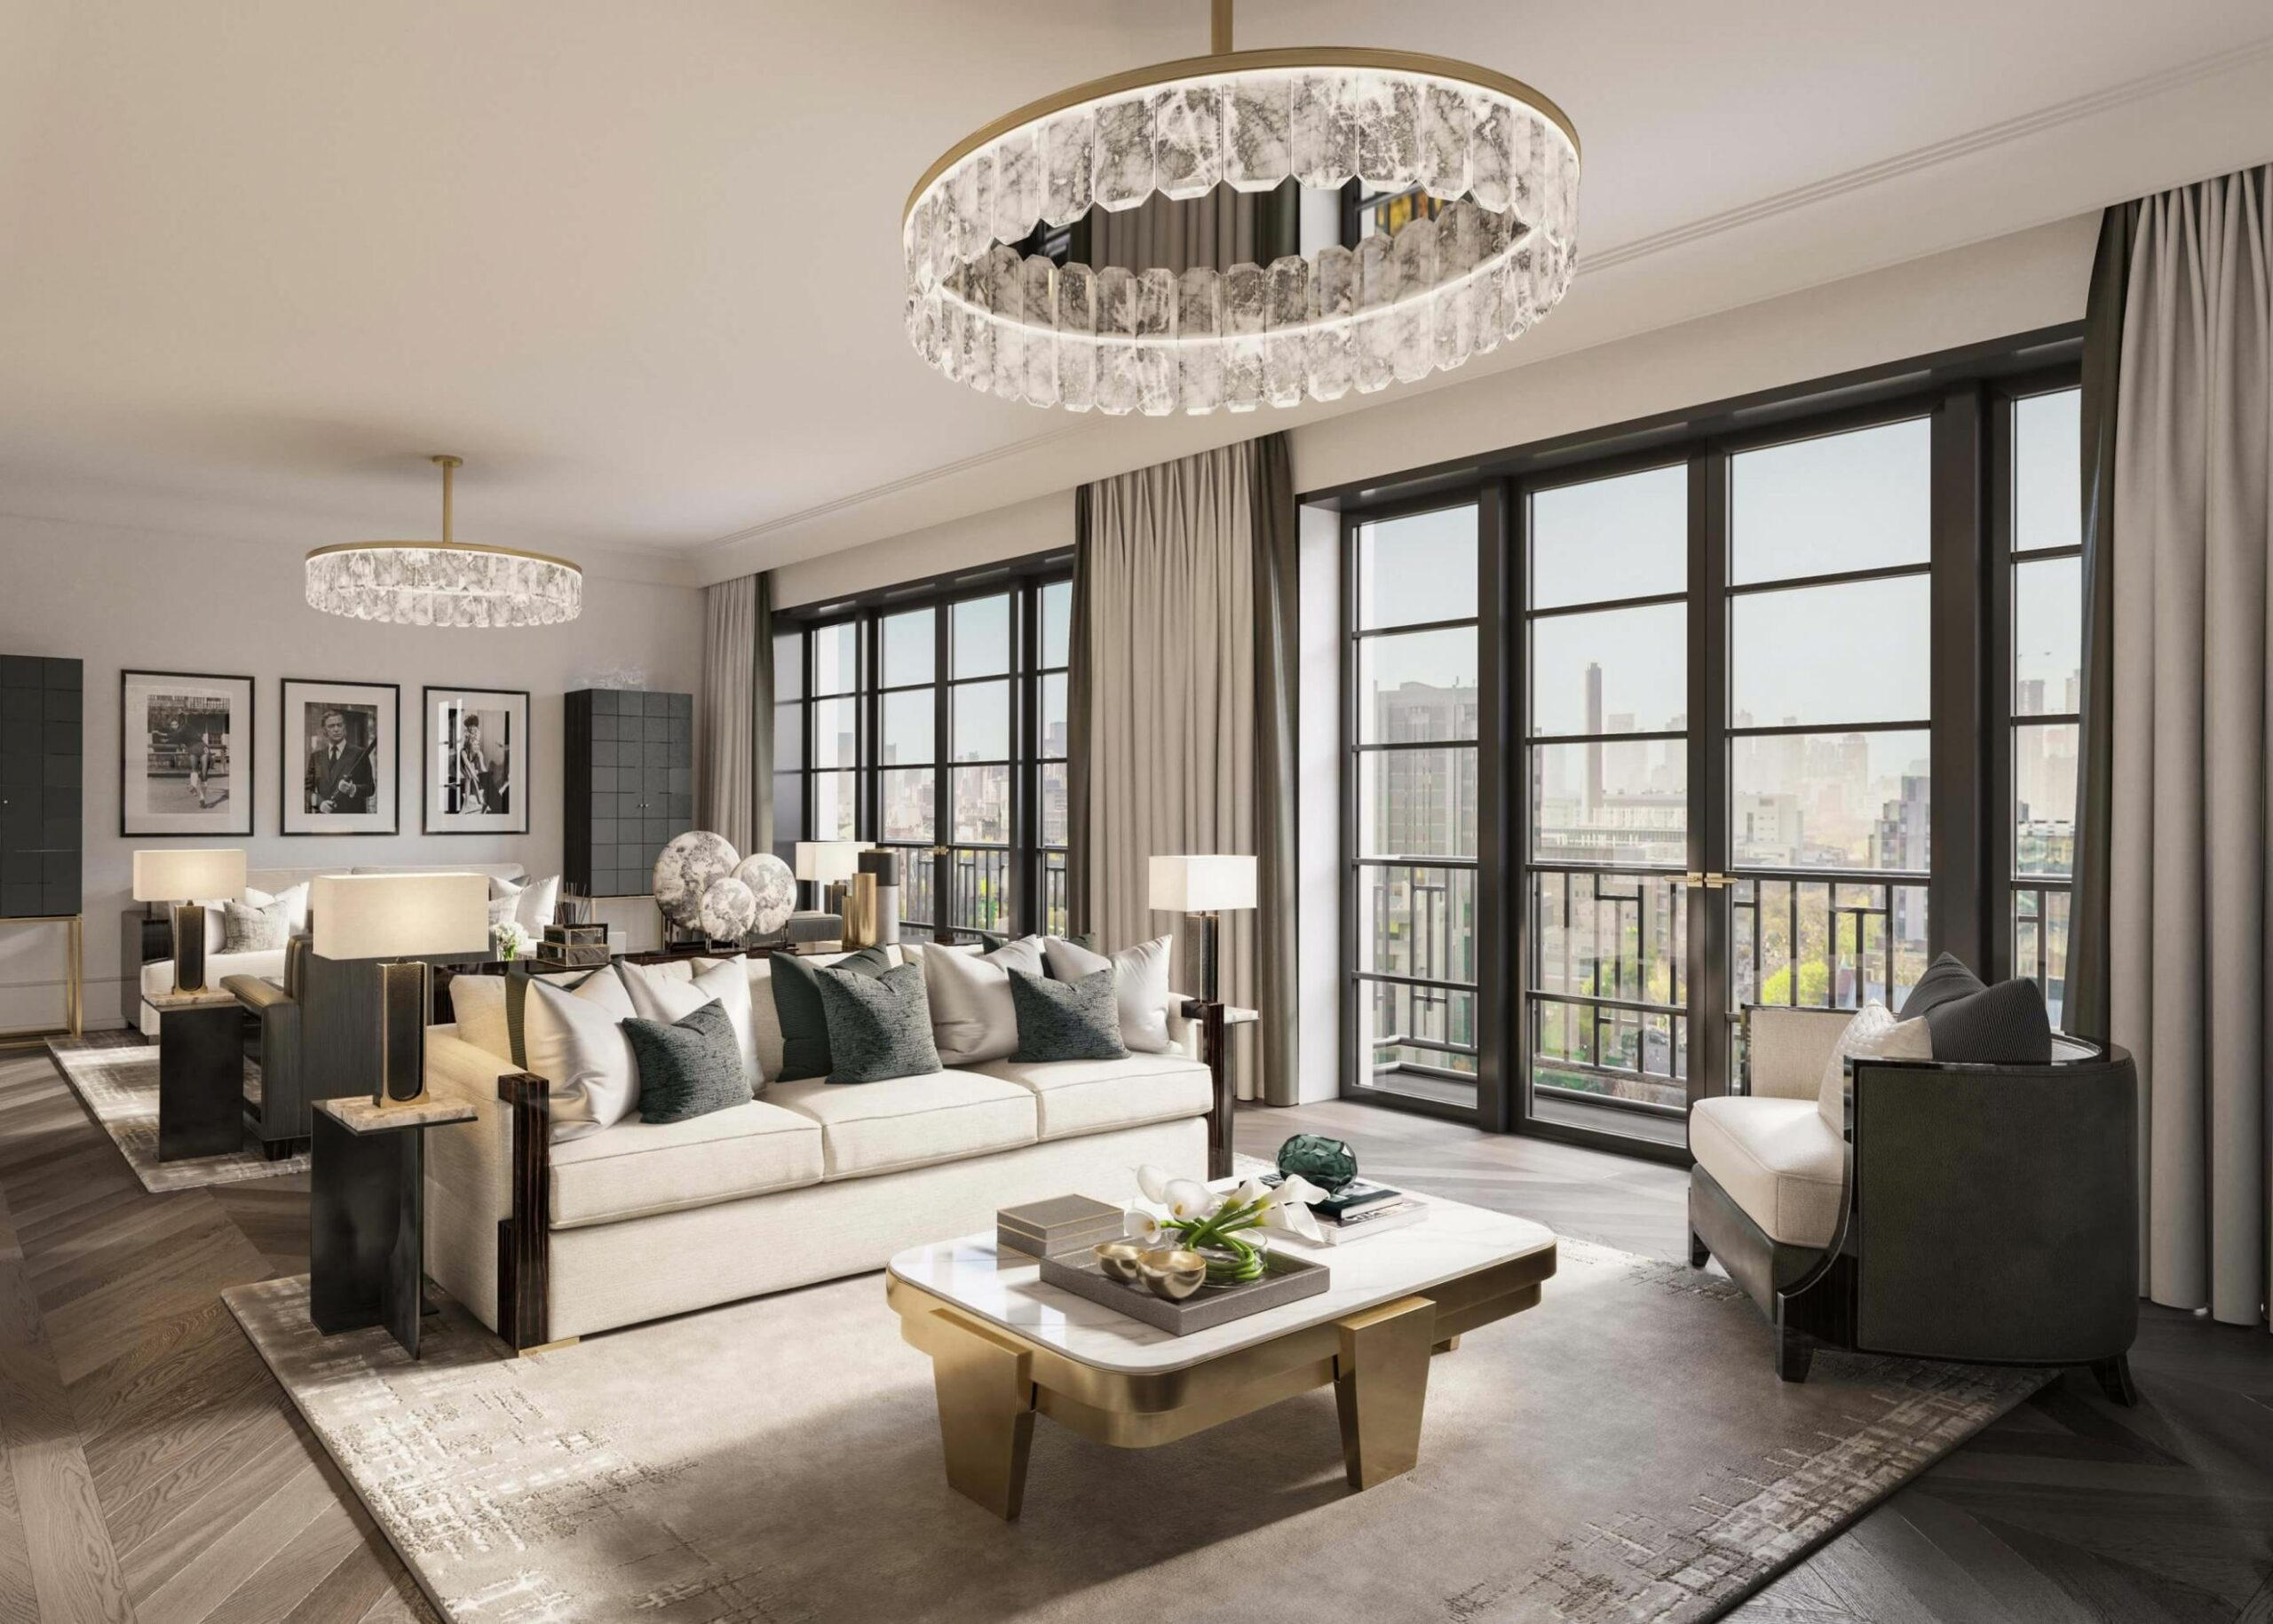 Upper East Side Apartment | Luxury Interior Design in New York ..